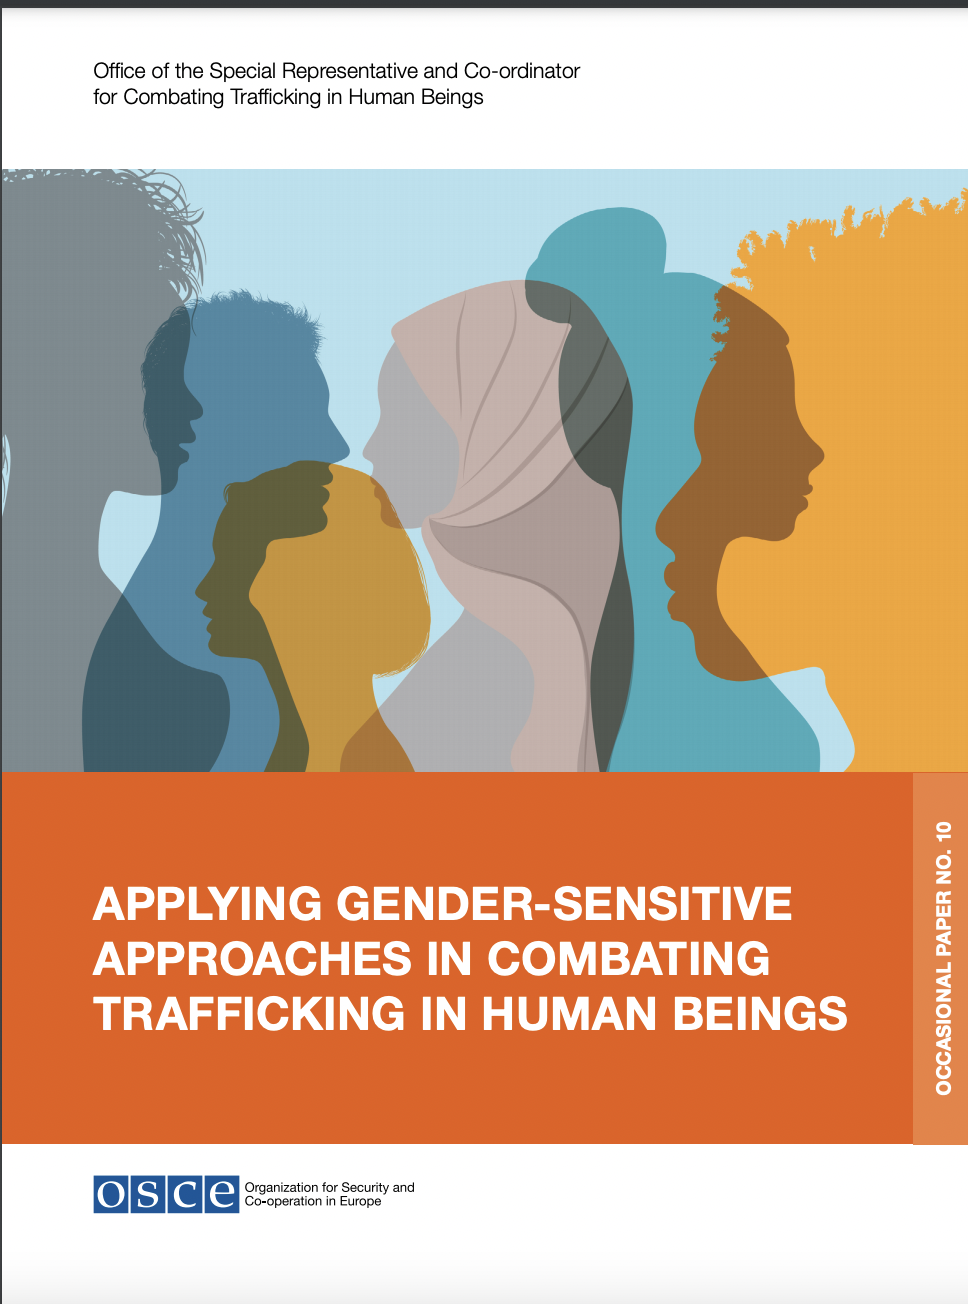 Applying Gender-Sensitive Approaches in Combating Trafficking in Human Beings